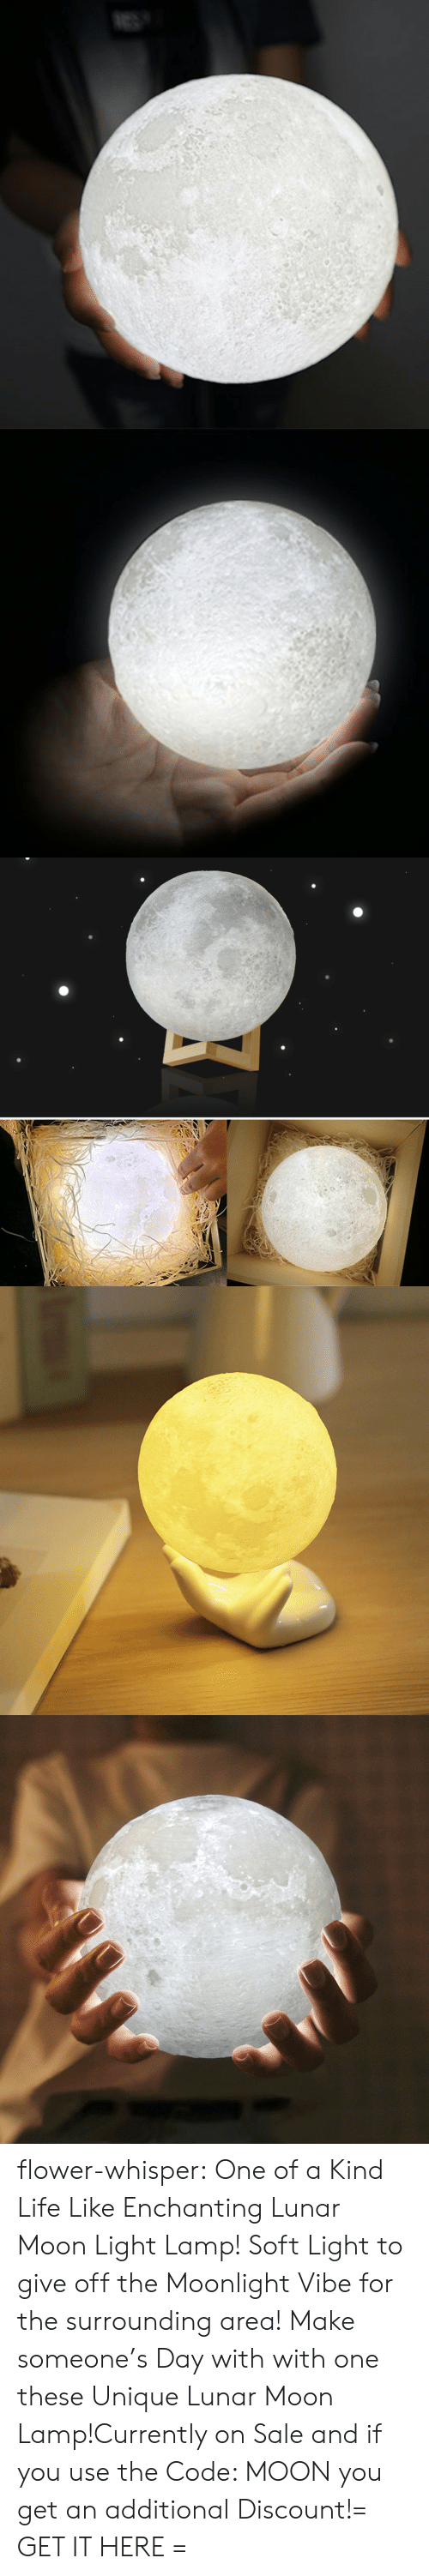 Life, Tumblr, and Blog: flower-whisper:  One of a Kind Life Like Enchanting Lunar Moon Light Lamp! Soft Light to give off the Moonlight Vibe for the surrounding area! Make someone's Day with with one these Unique Lunar Moon Lamp!Currently on Sale and if you use the Code: MOON you get an additional Discount!= GET IT HERE =